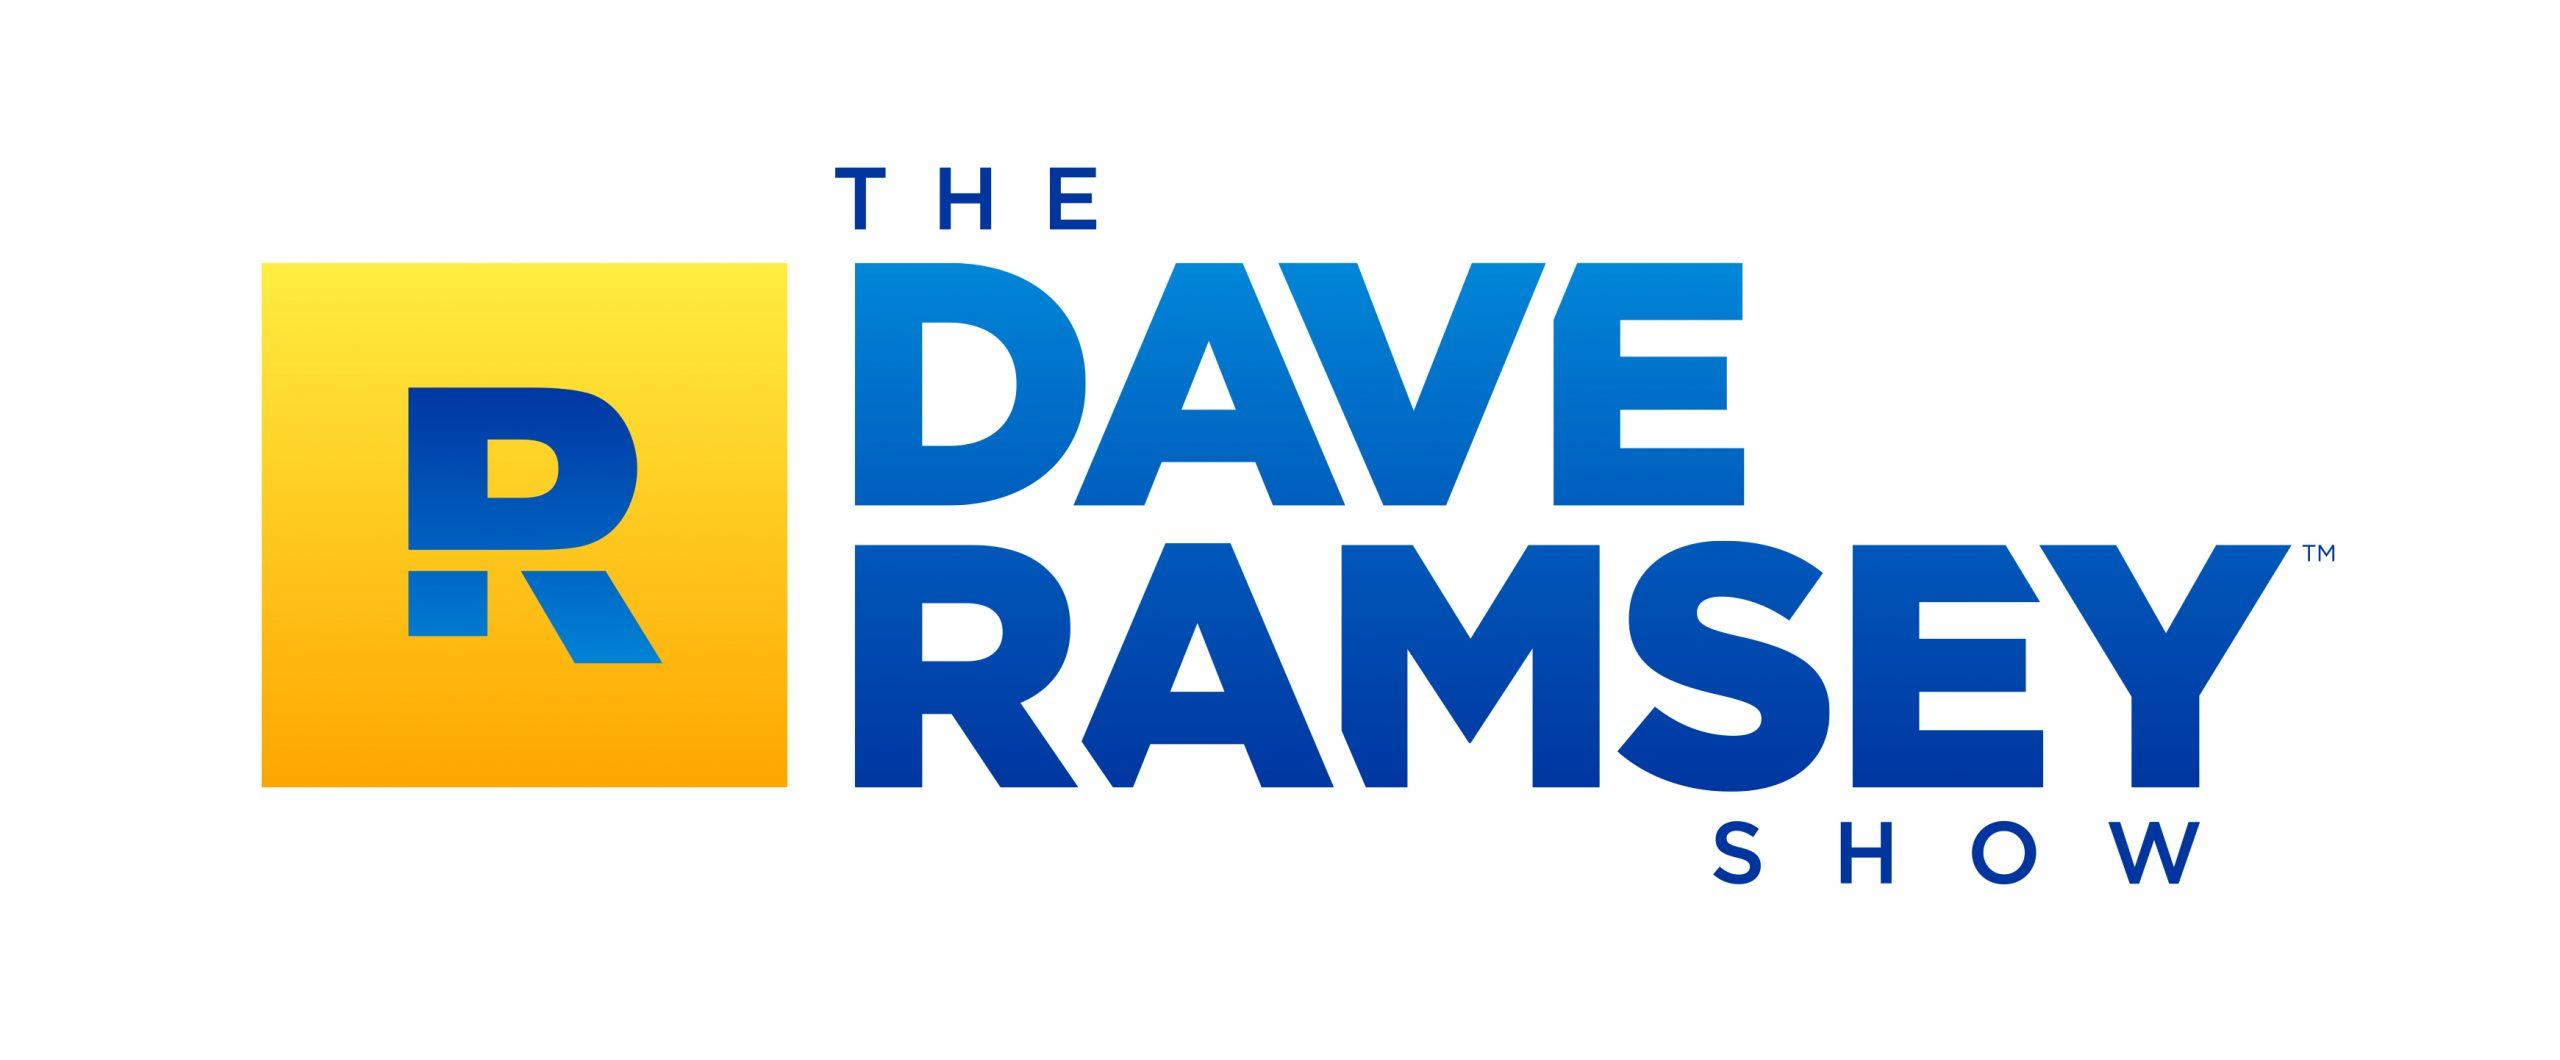 The-Dave-Ramsey-Show